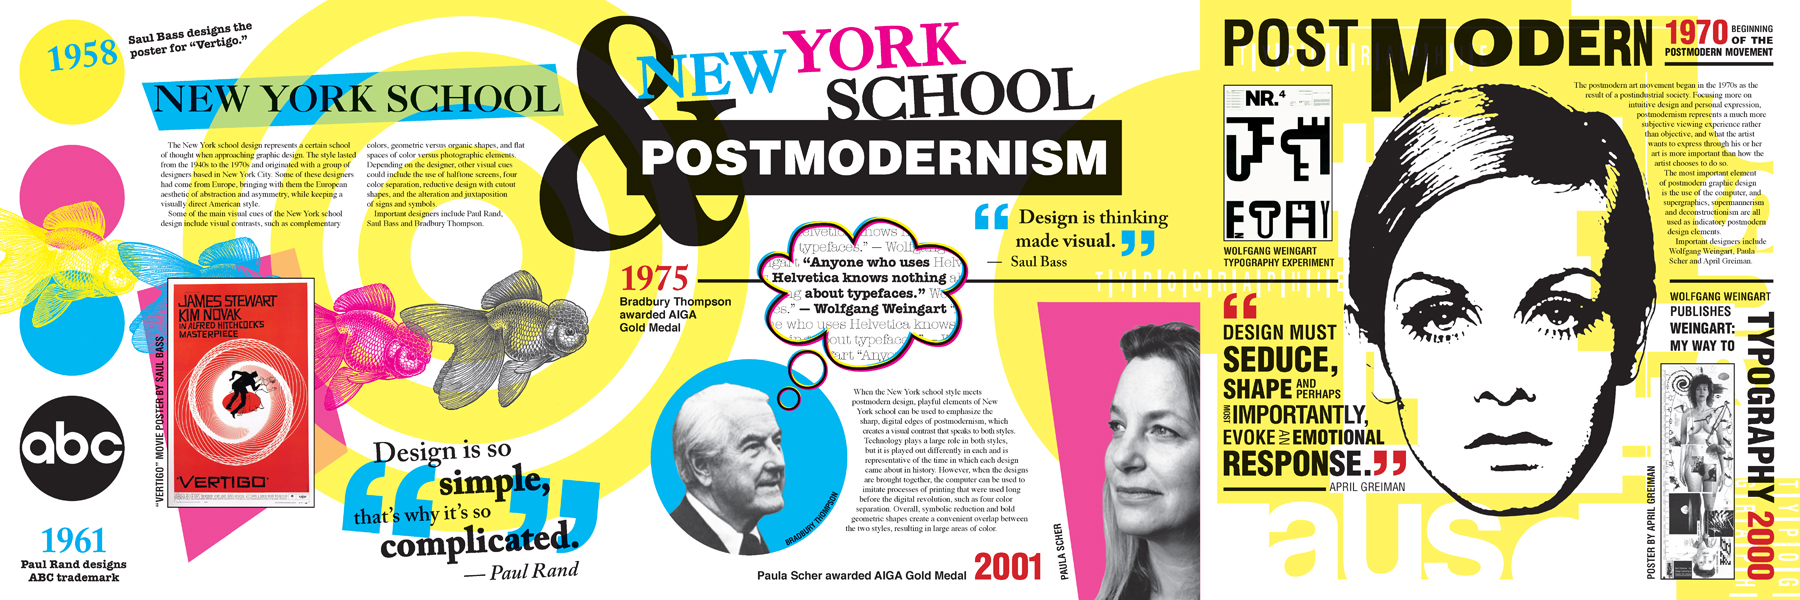 paula scher research paper essay Paula scher, also known as america's first design lady, is a graphic designer,  illustrator and art educator the tyler school of art in philadelphia is where paula .